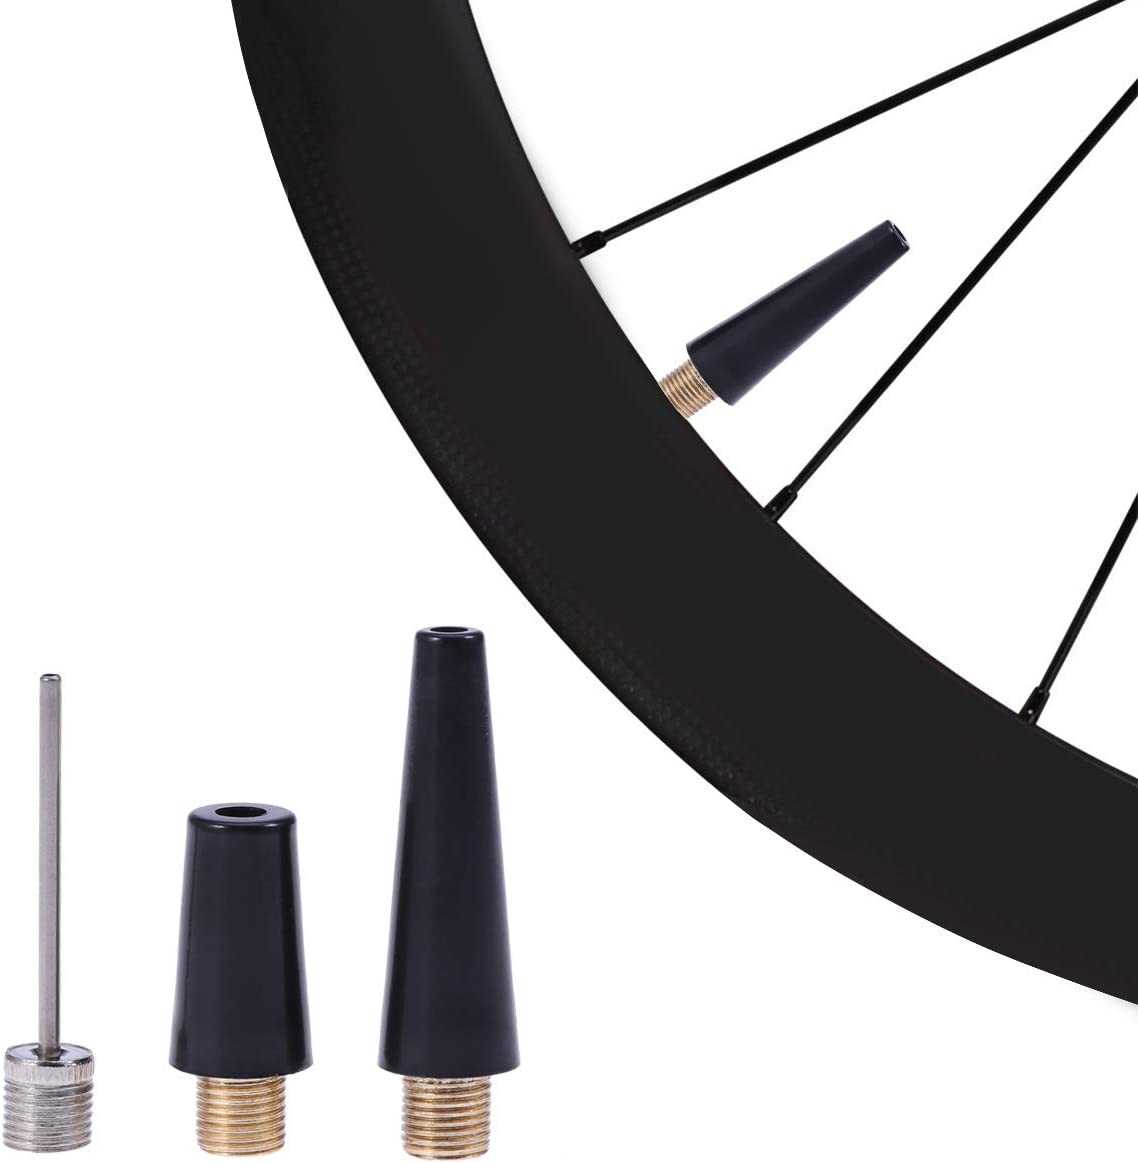 3pcs Ball Bicycle Pump Needle Nozzle Kit Valve Adapter for Ball Bicycle SBJ